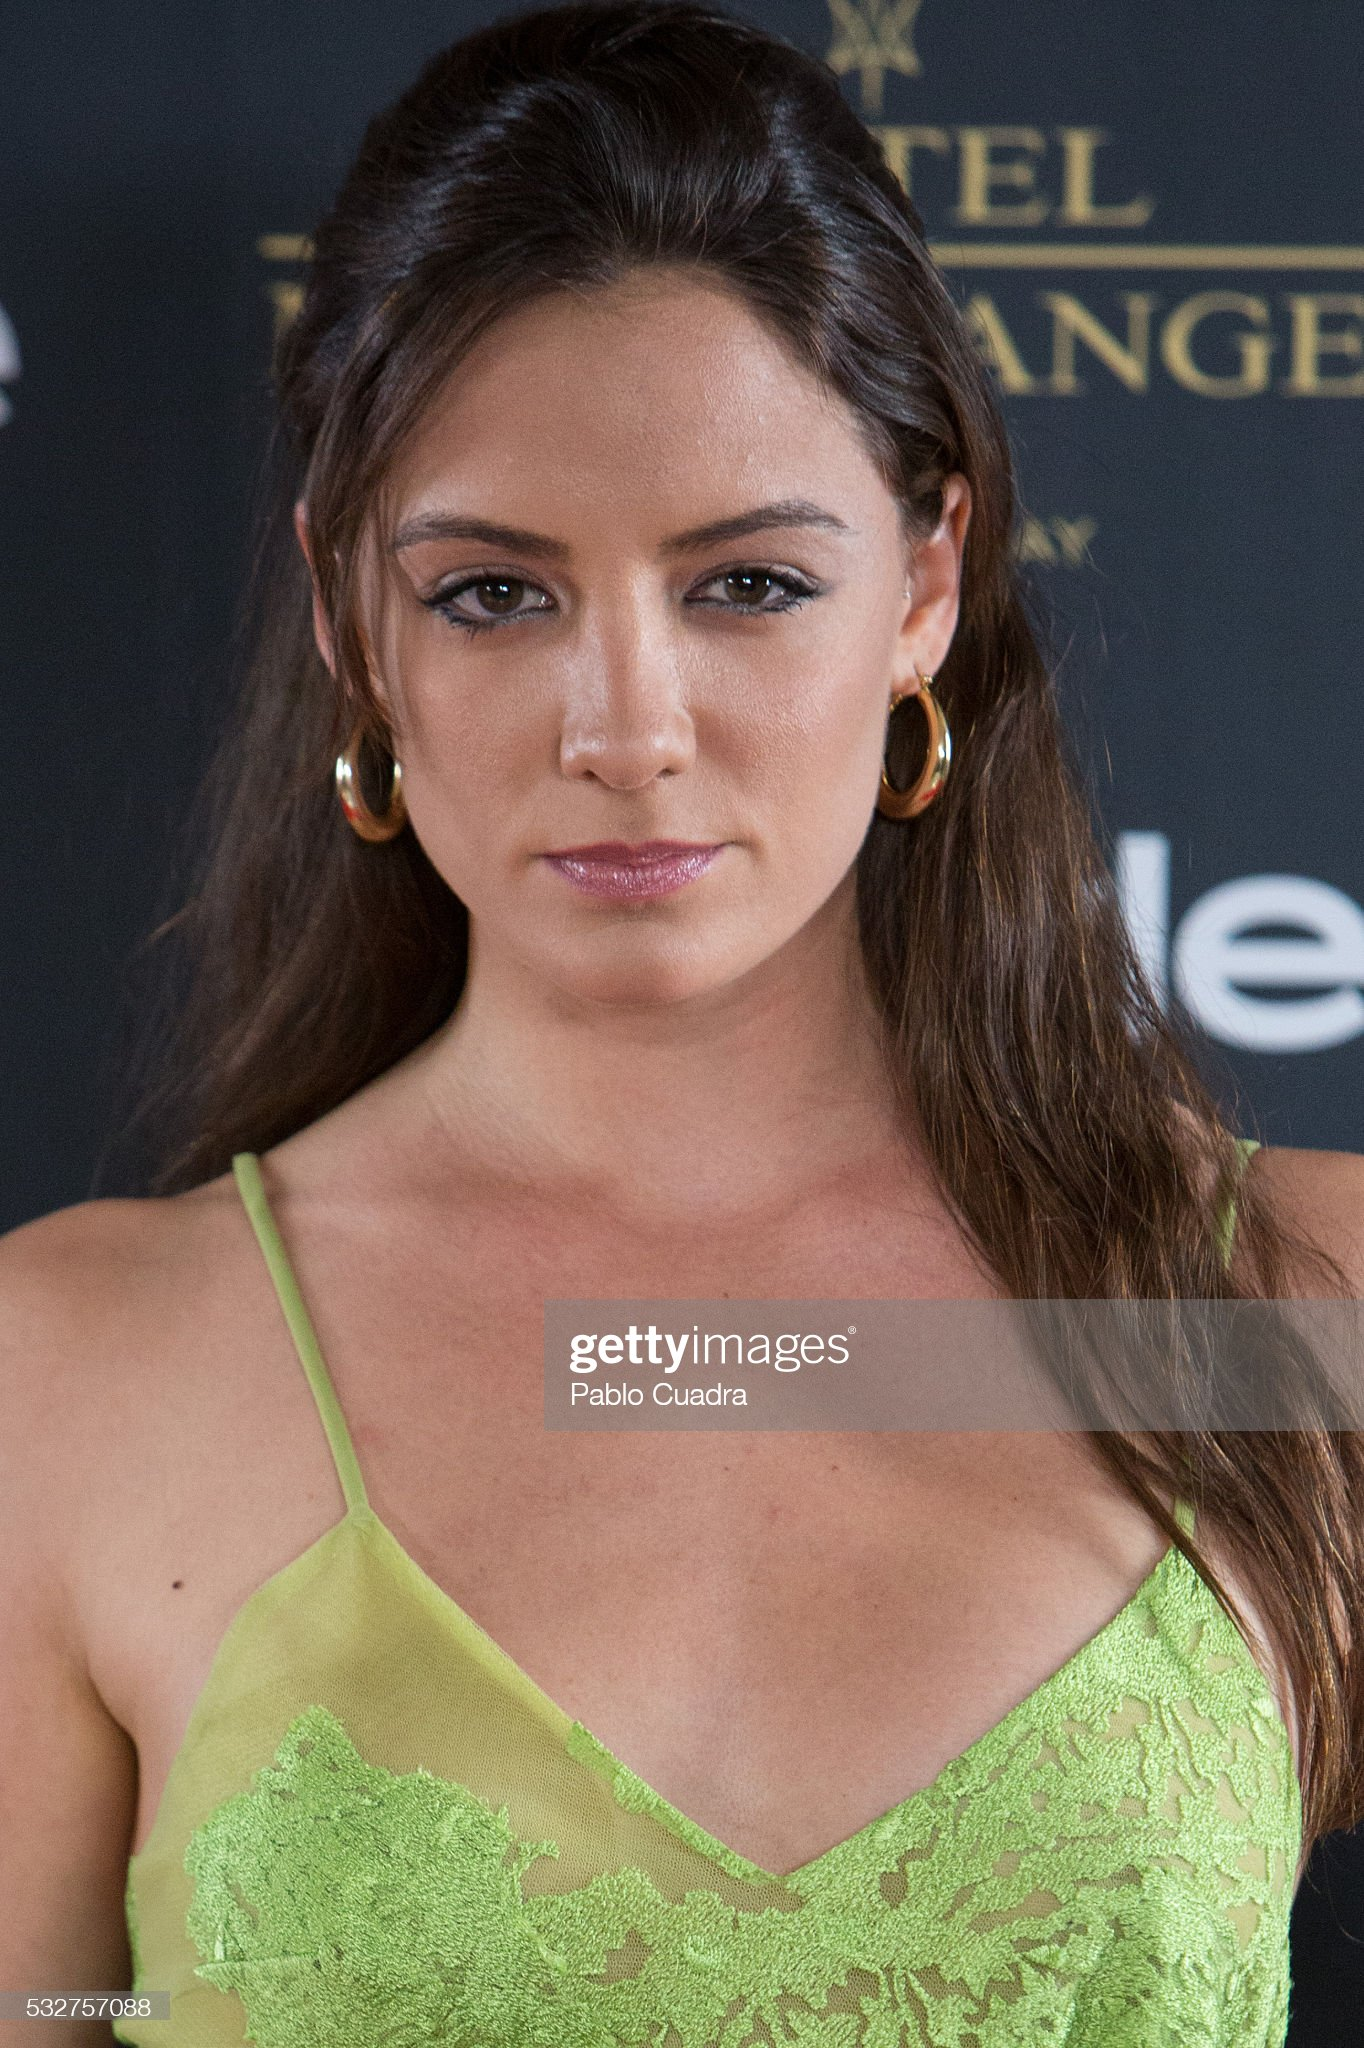 ¿Cuánto mide María Hervás? - Altura Actress-maria-hervas-attends-the-live-in-colors-photocall-during-the-picture-id532757088?s=2048x2048